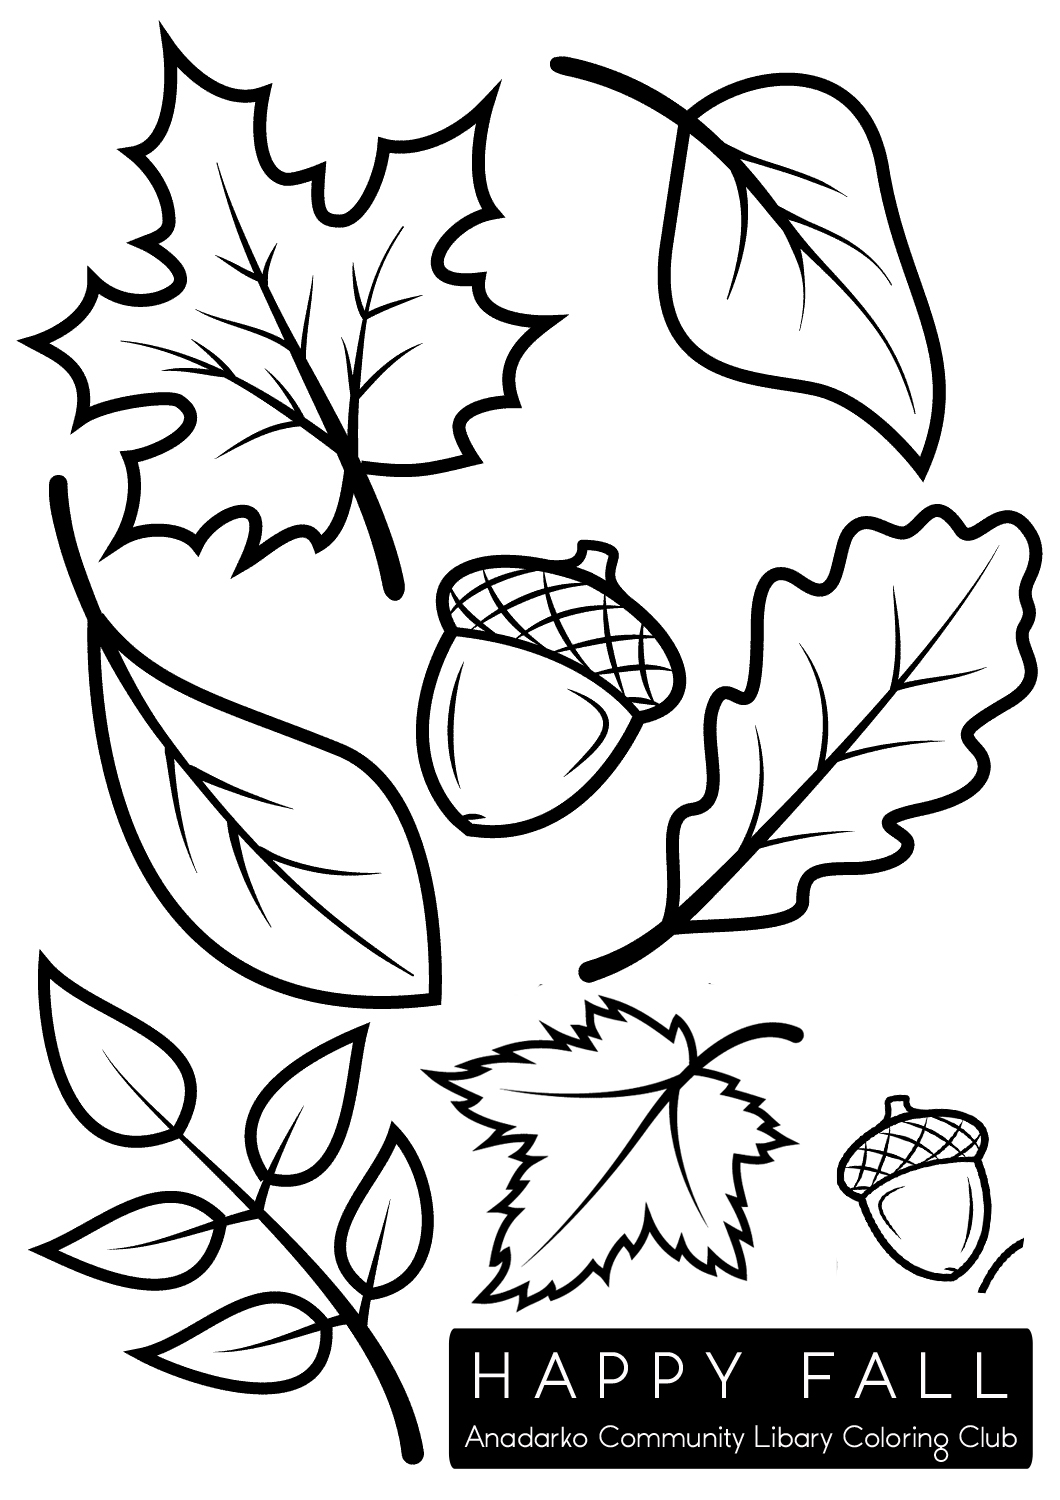 coloring art projects warhol christmas tree art projects for kids coloring projects art